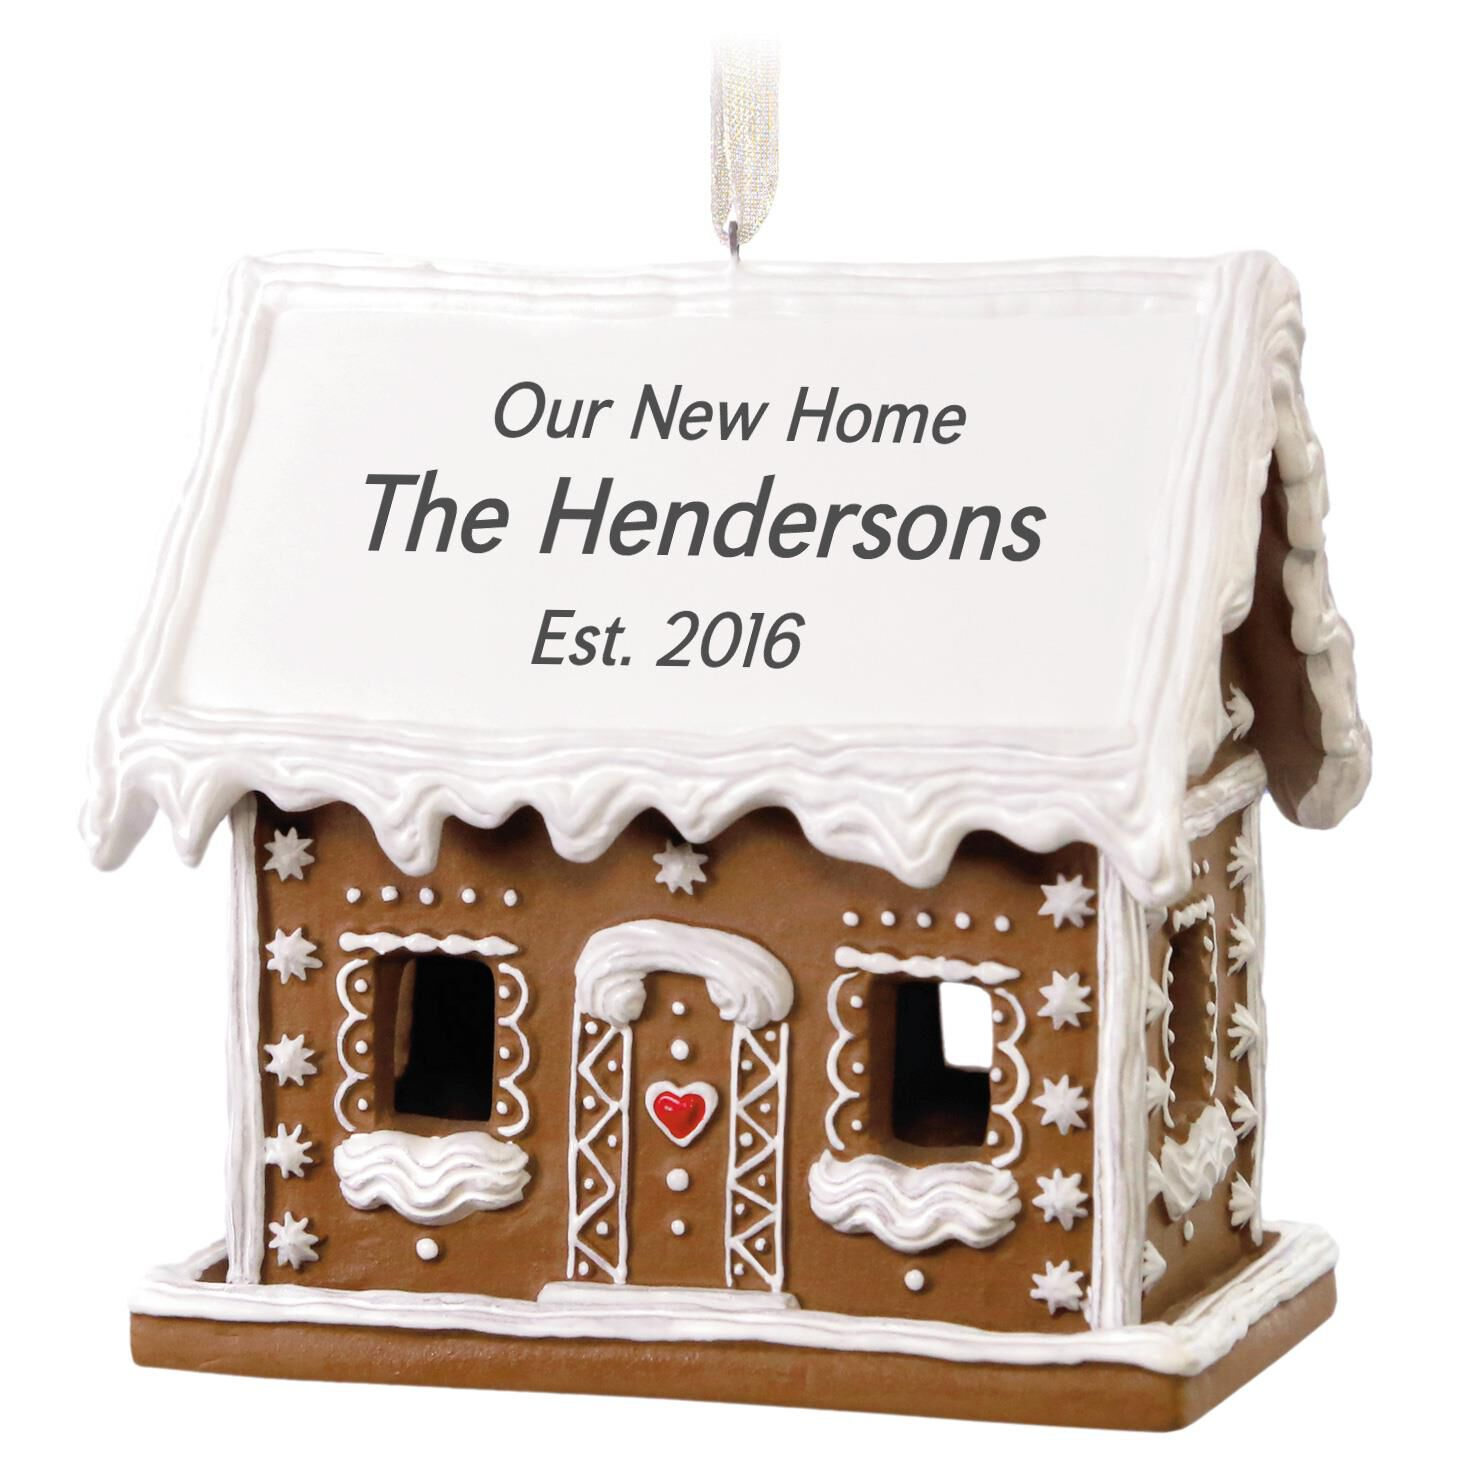 New home ornaments personalized - Gingerbread House Personalized Ornament Personalized Ornaments Hallmark